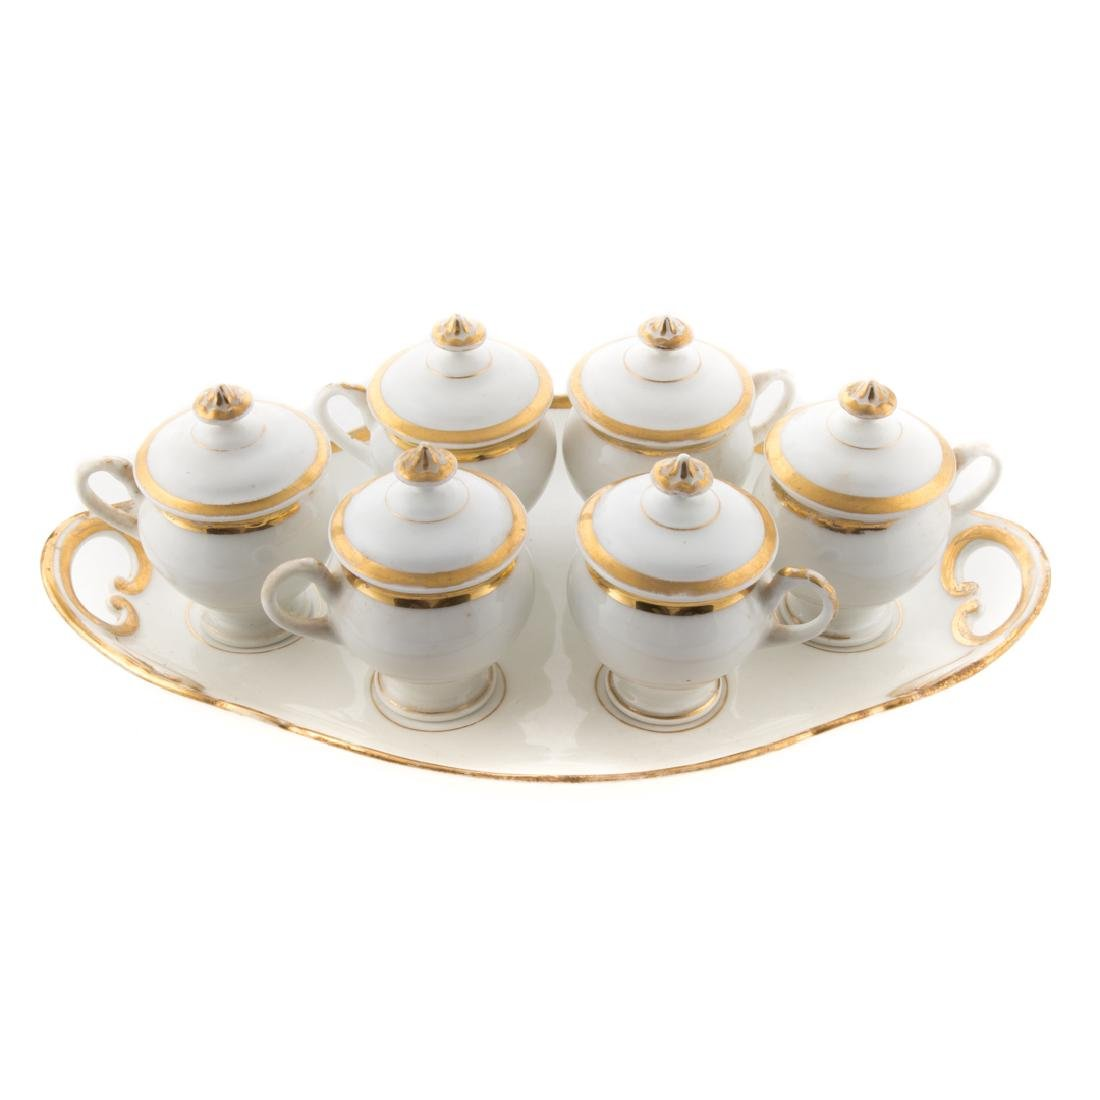 Six Porcelain de Paris syllabubs with fitted tray